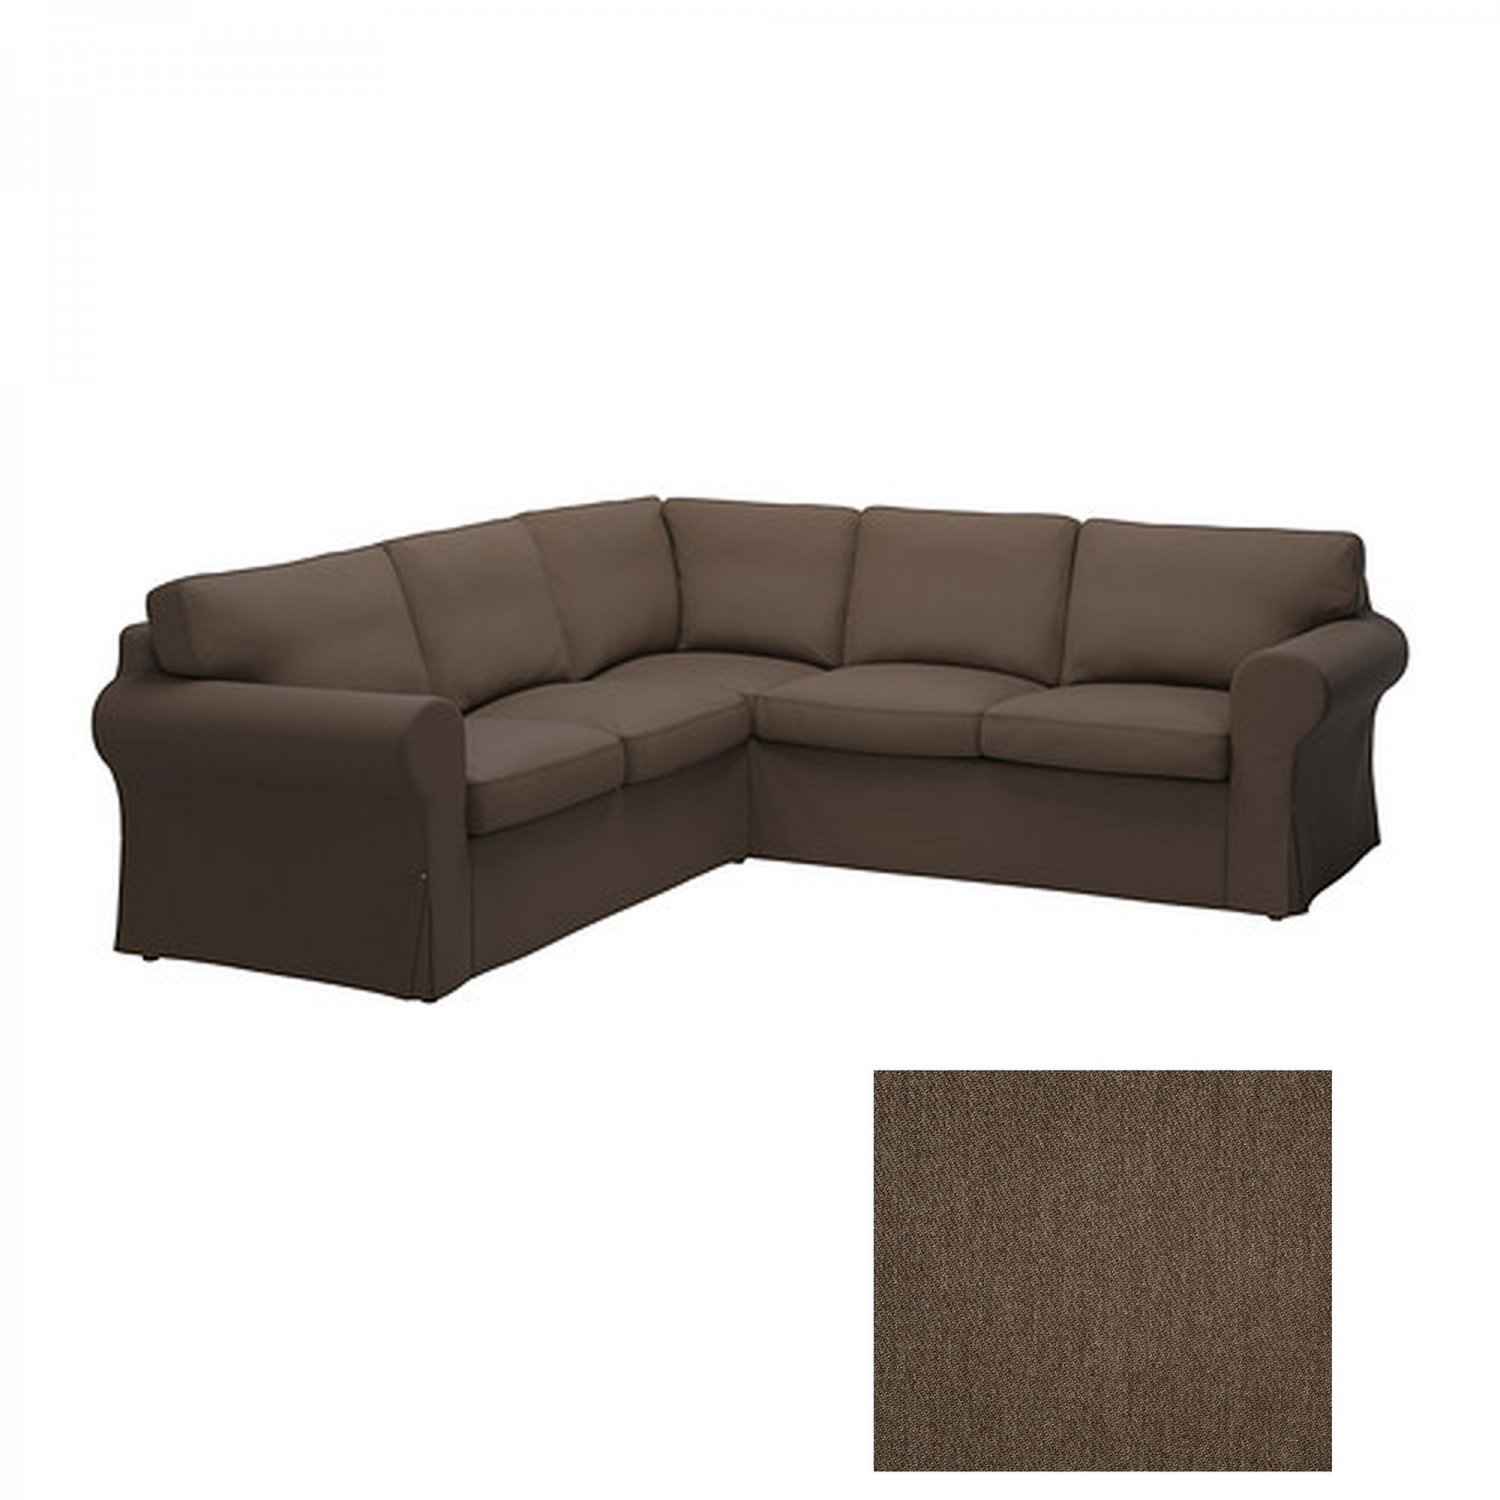 Ikea ektorp 2 2 corner sofa cover slipcover jonsboda brown for Ikea corner sofa